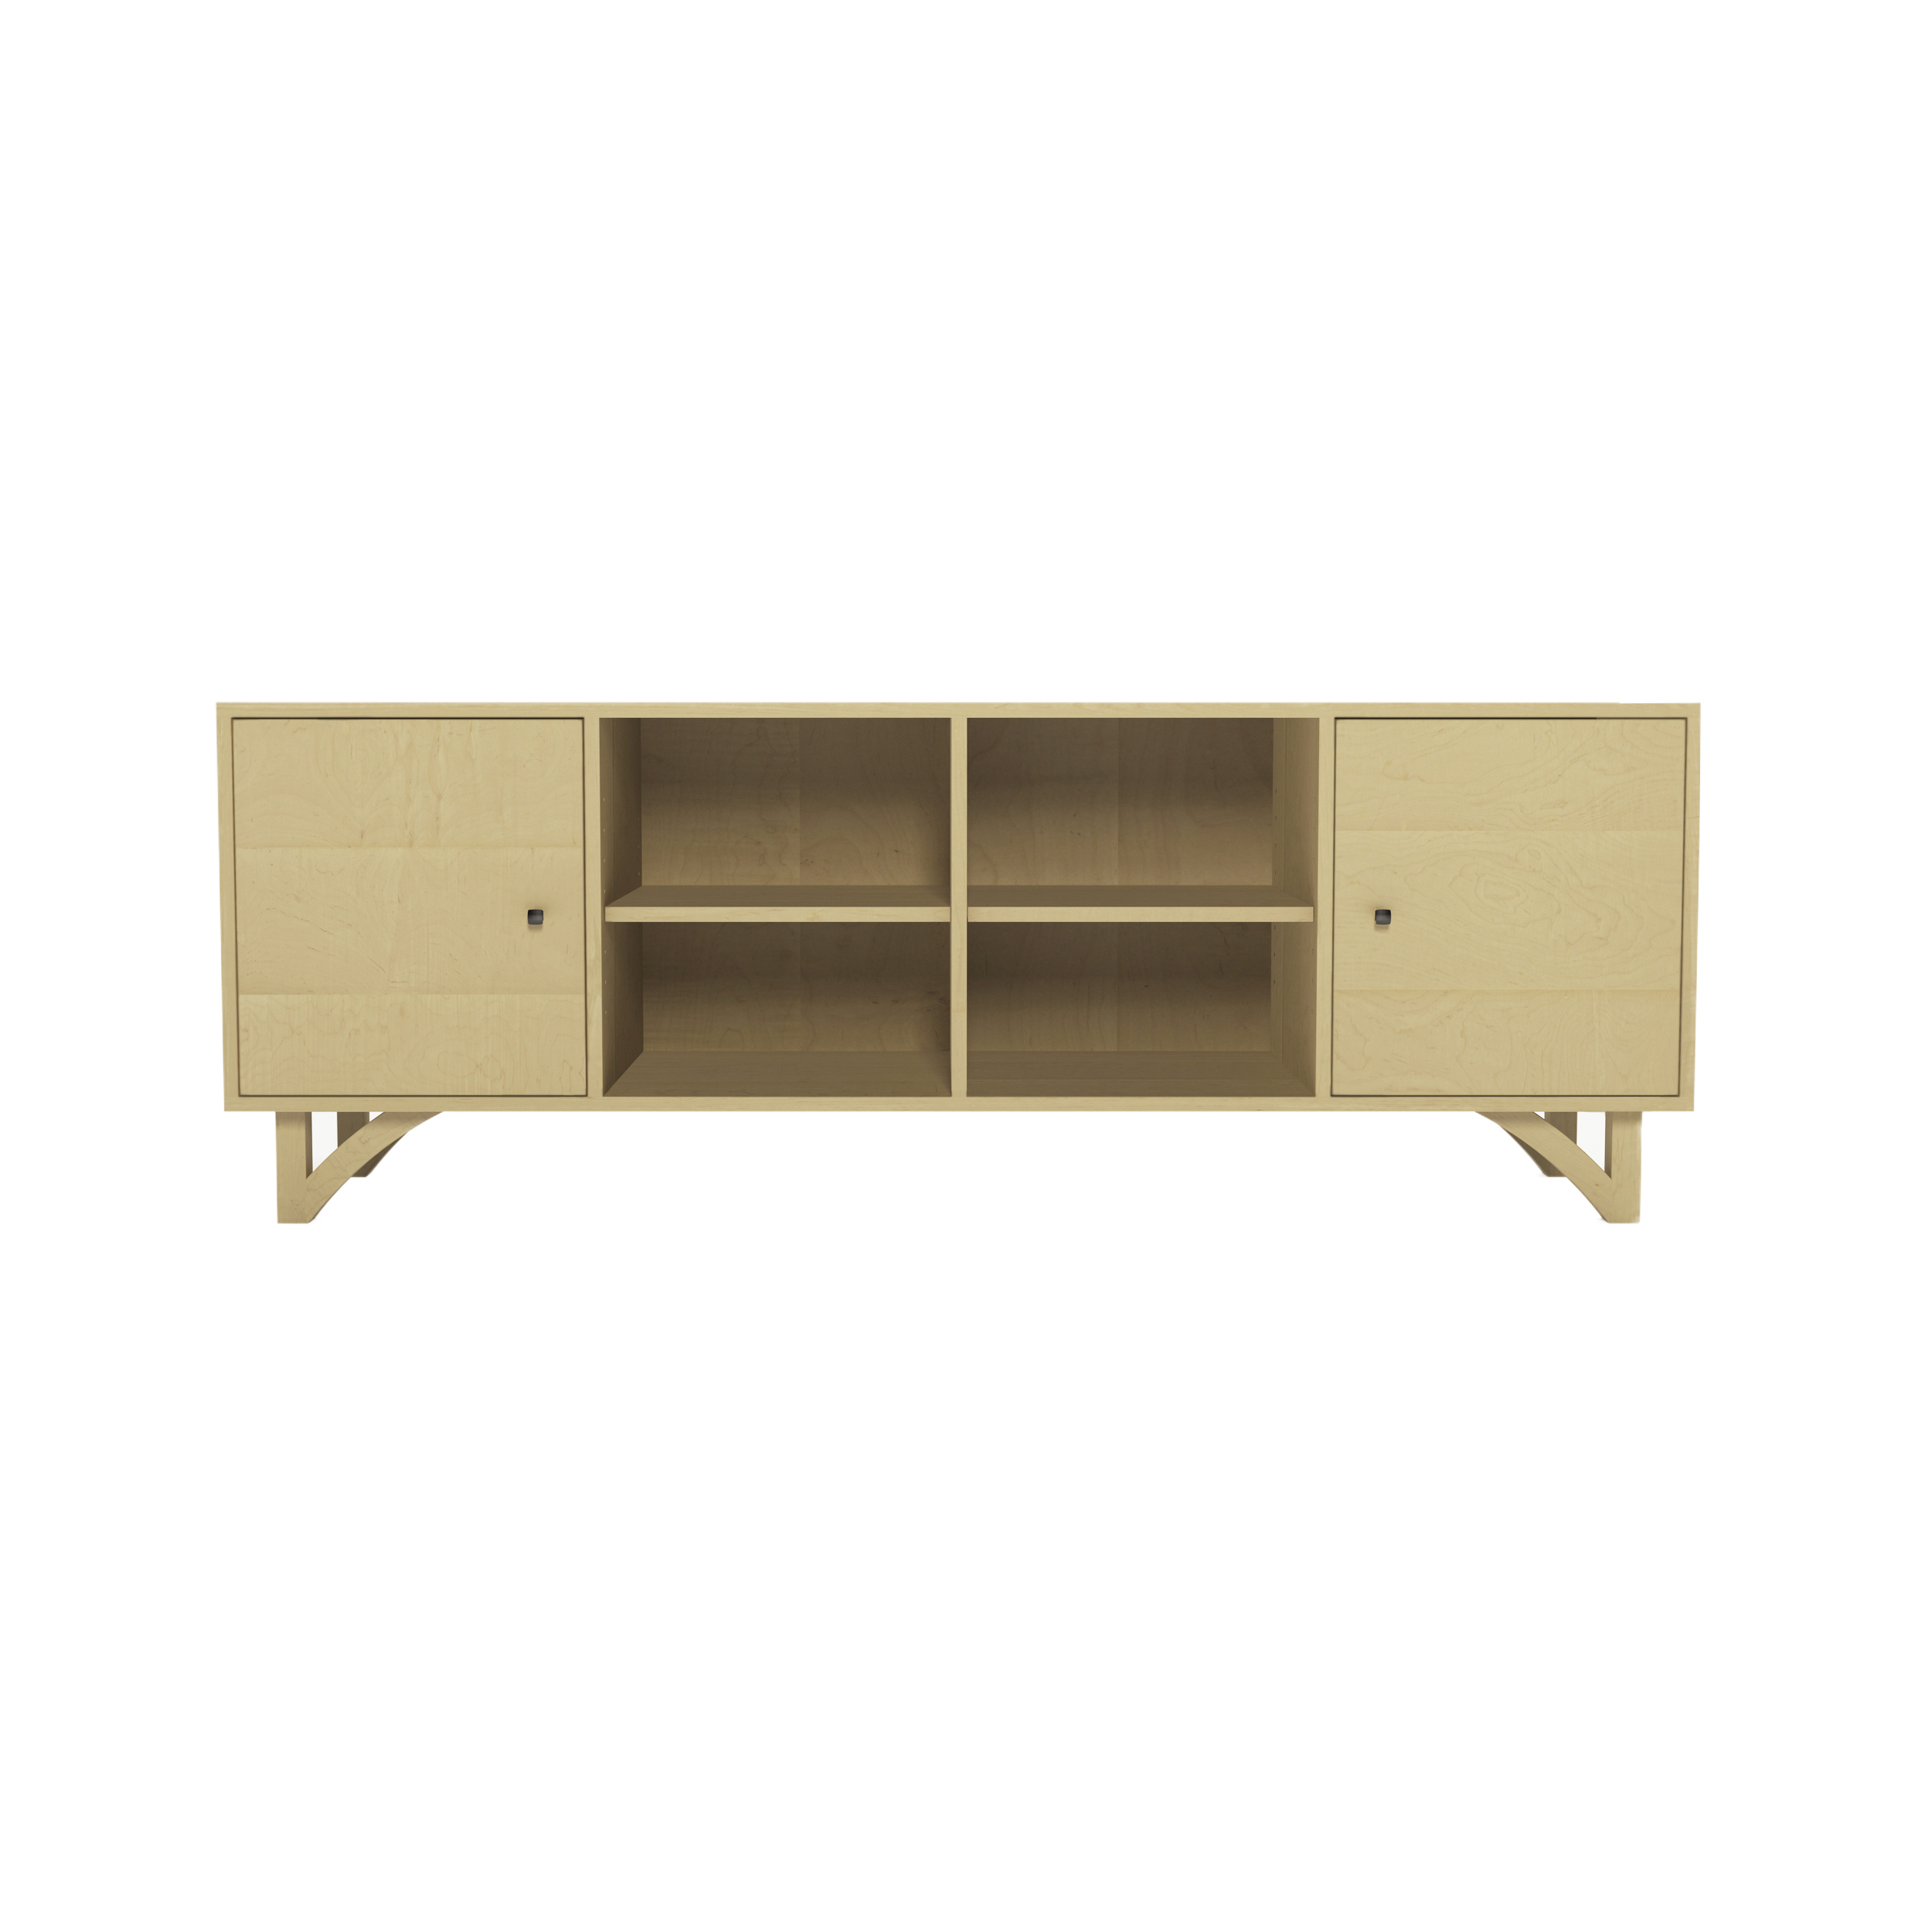 Series 454 Media Cabinet With Two Doors At 72″ In Width